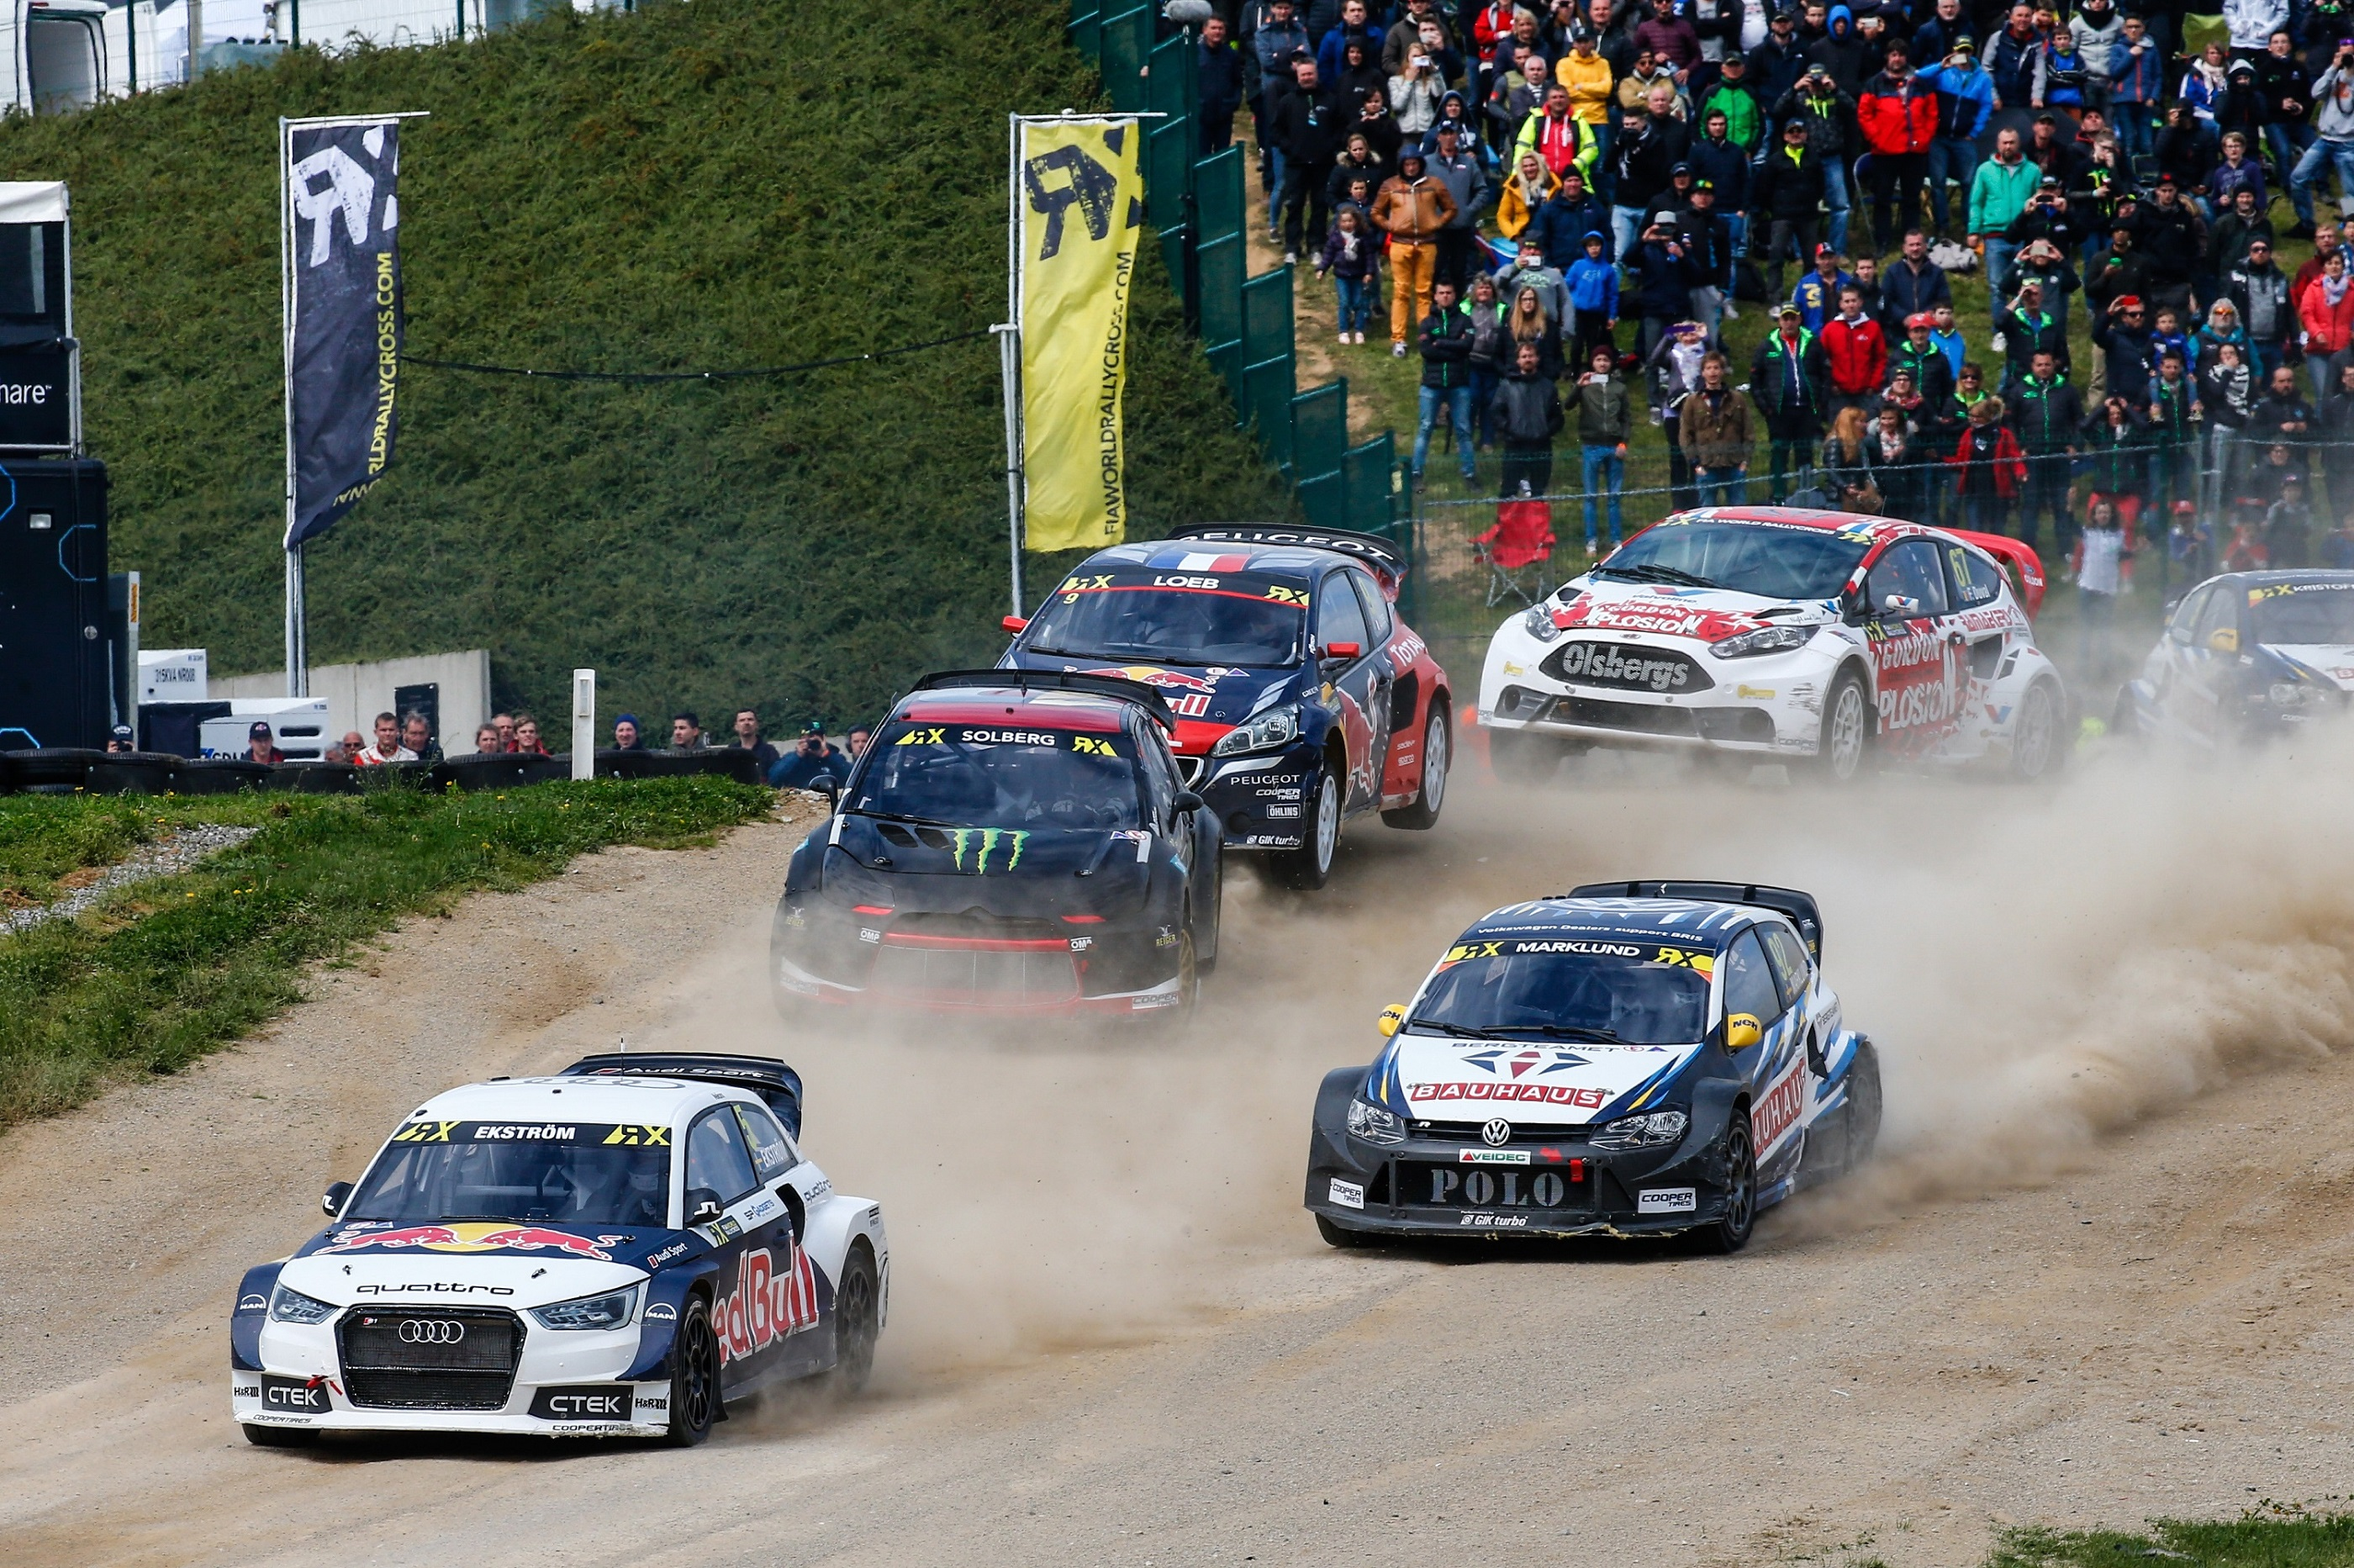 2016 FIA World Rallycross Championship / Round 03, Mettet, Belgium / May 14 - 15 2016 // Worldwide Copyright: IMG/McKlein